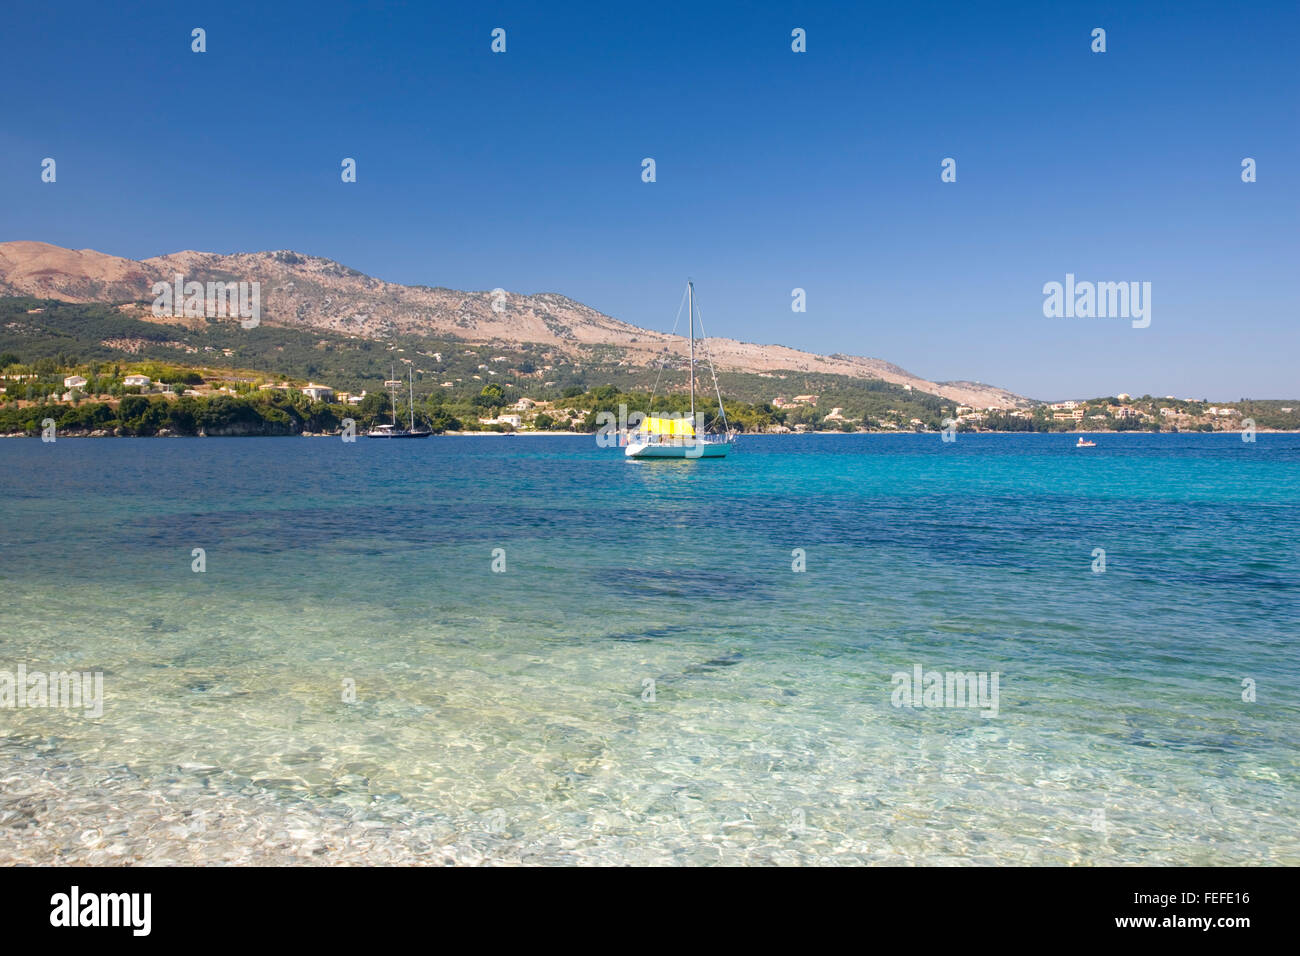 Kassiopi, Corfu, Ionian Islands, Greece. View across the clear turquoise waters of Avlaki Bay, yacht anchored offshore. - Stock Image